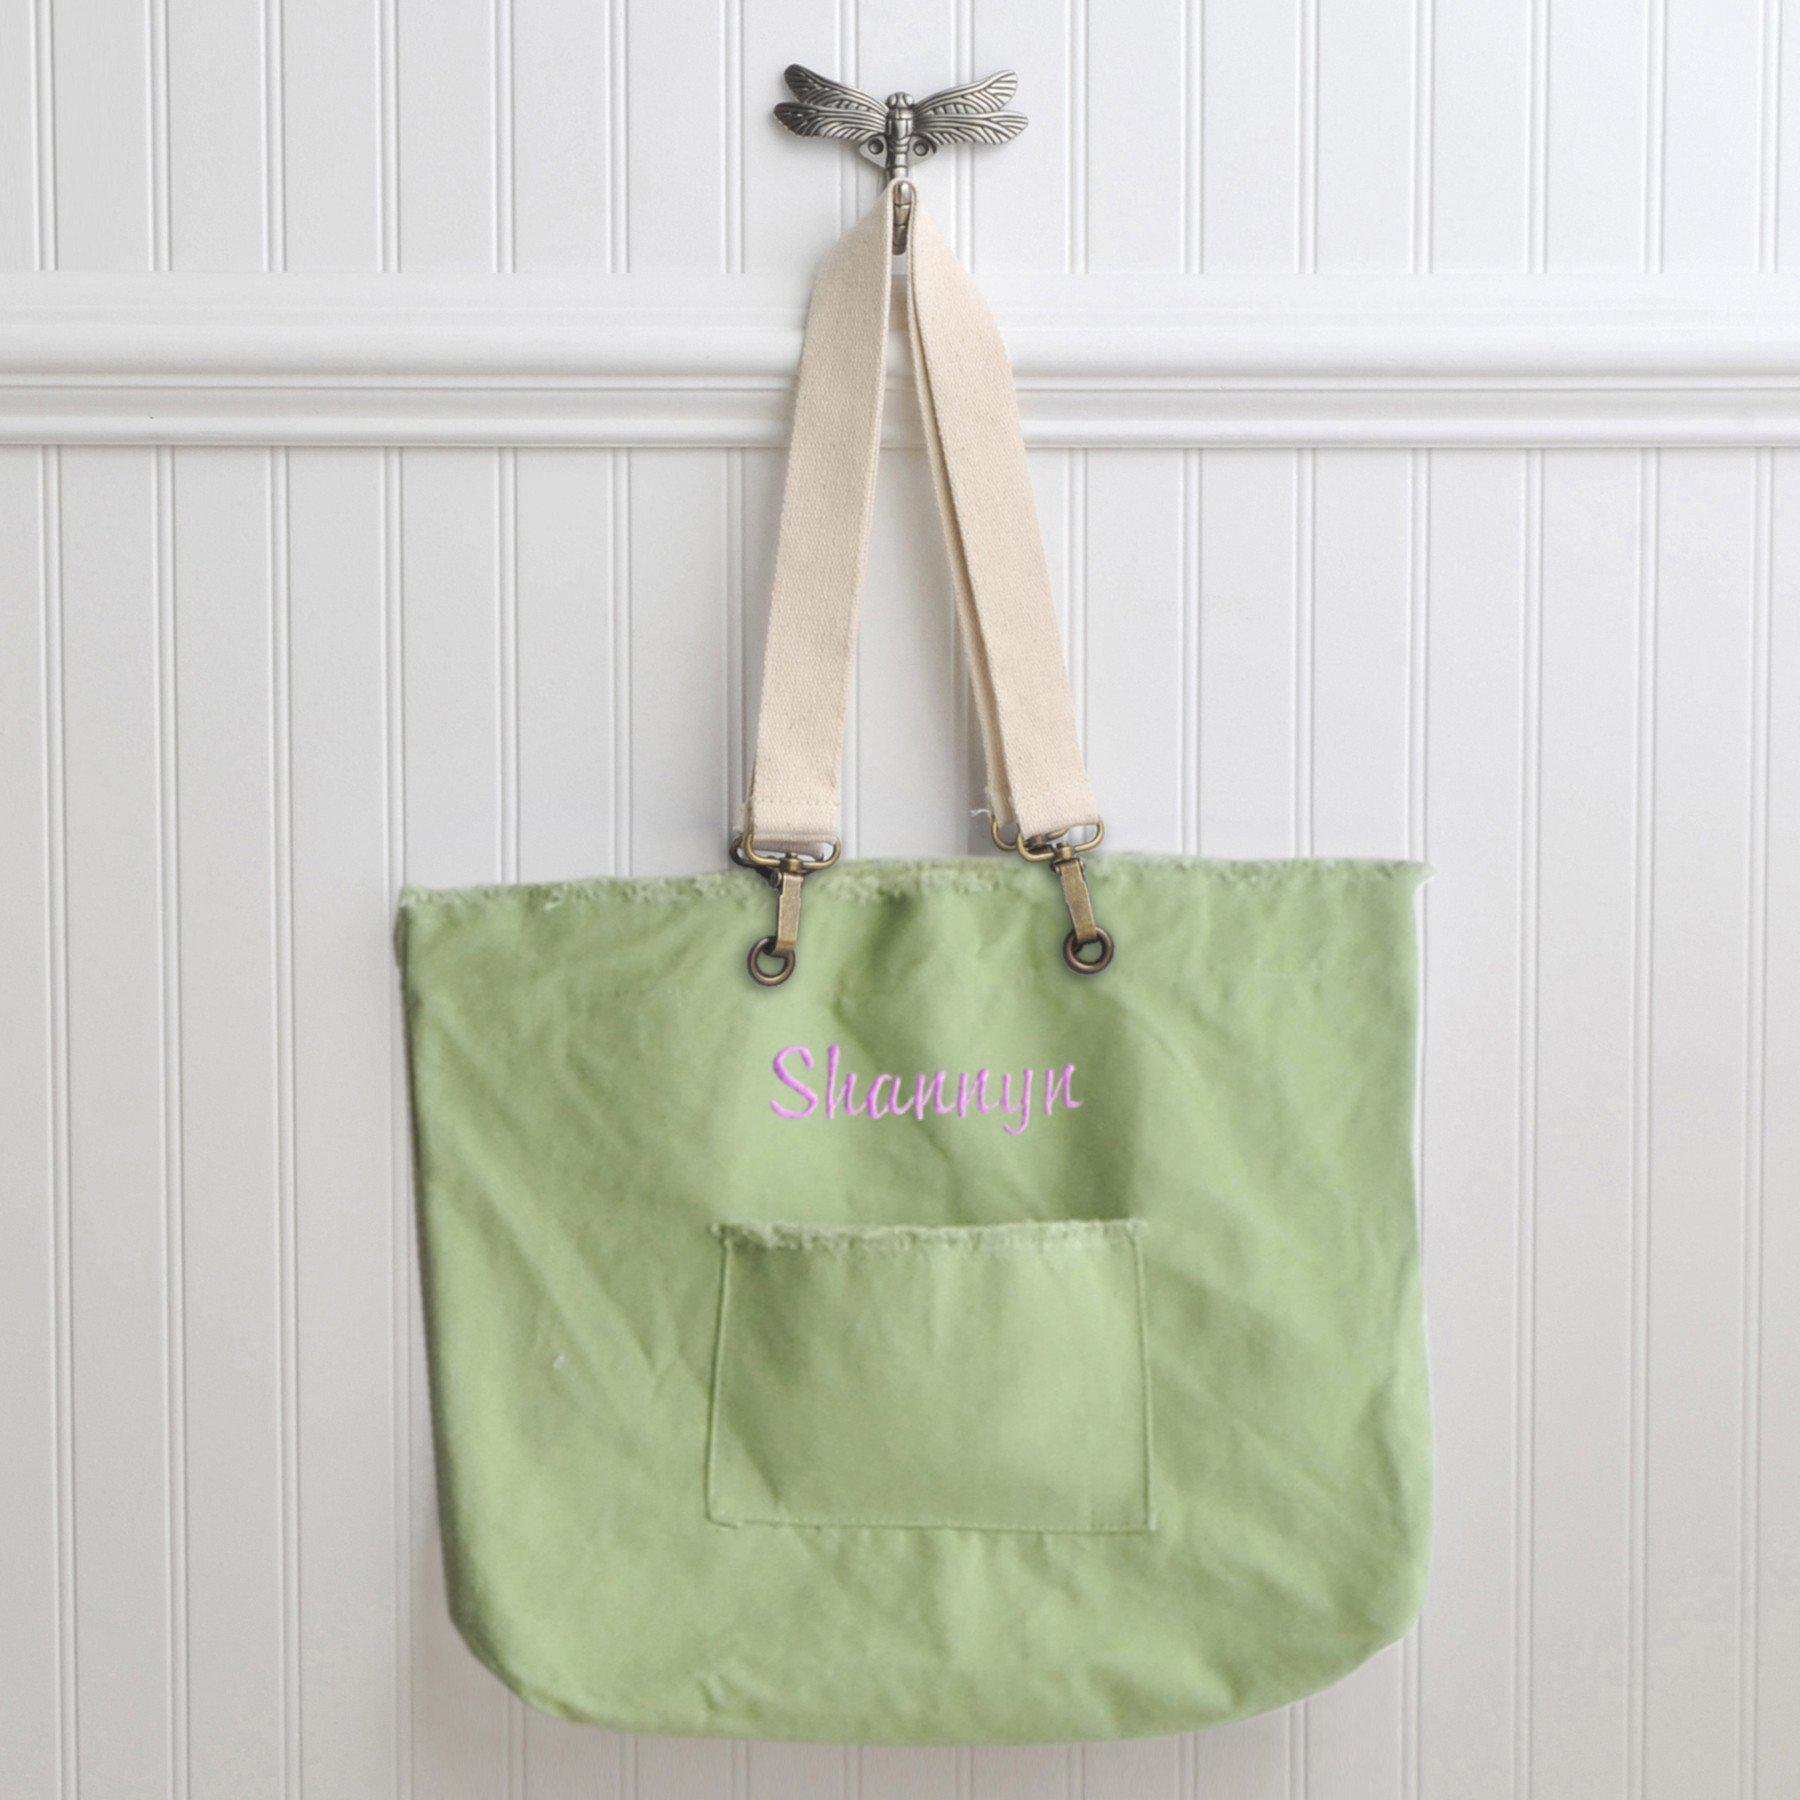 Personalized Tote Bags - Canvas - 4 Colors - Gifts for Her